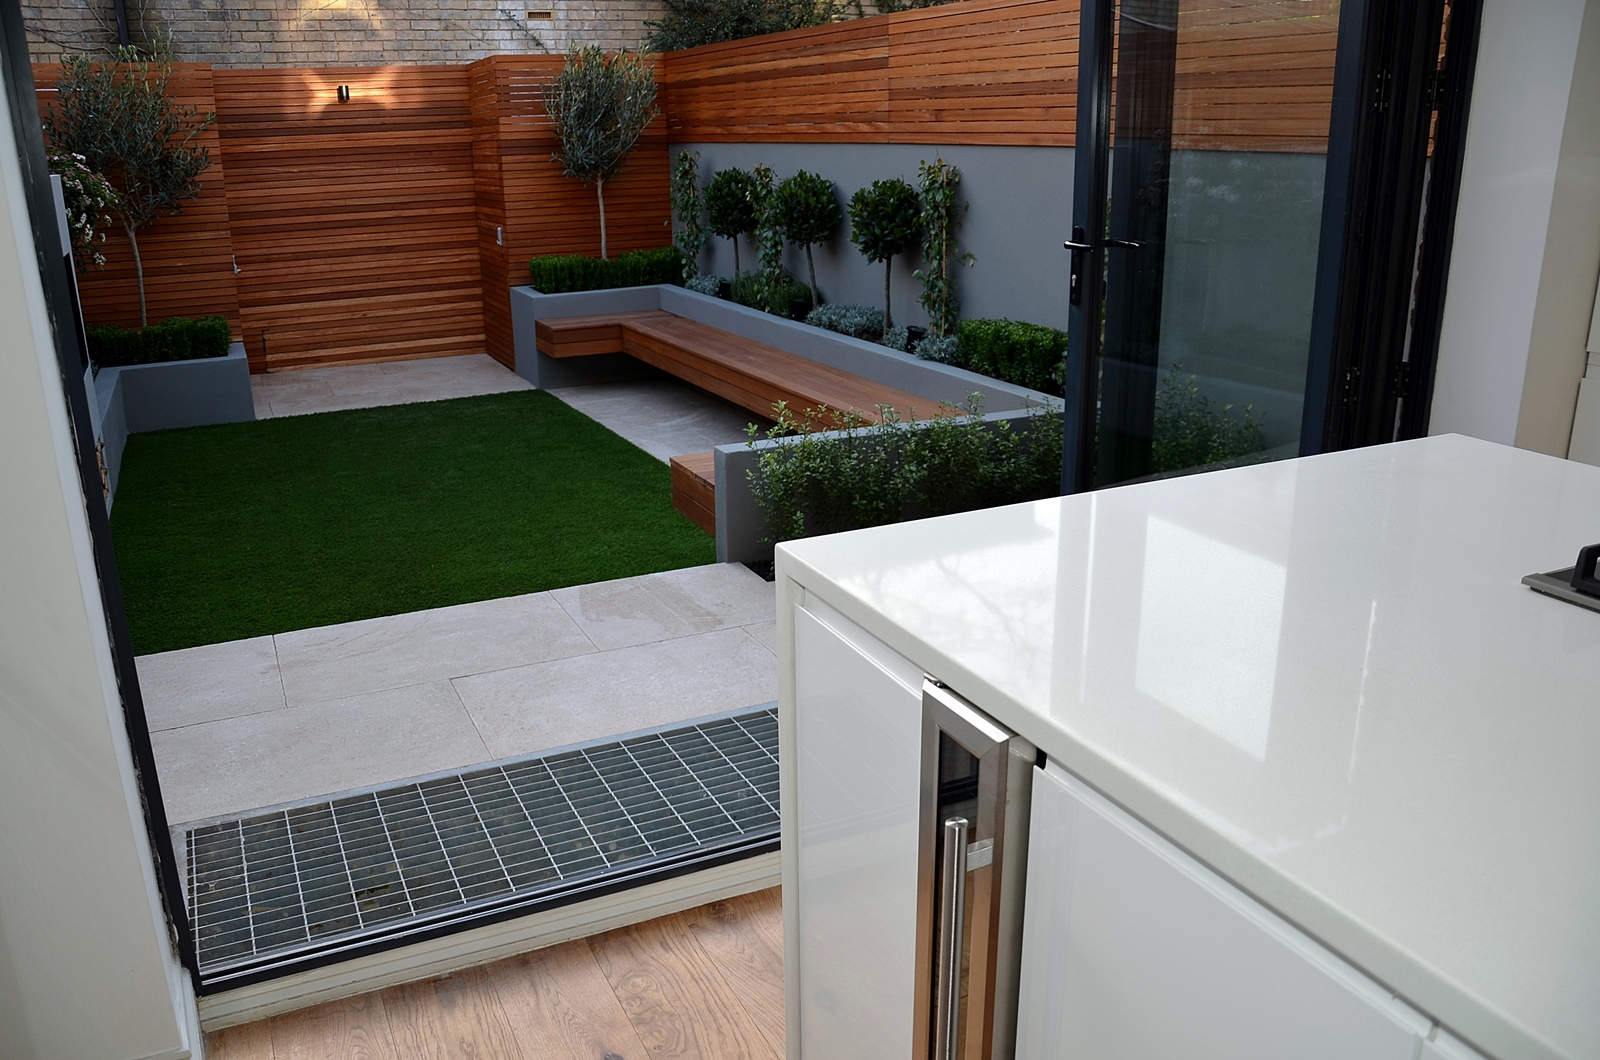 limestone paving floating hardwood bench cedar screen low maintenance ultra chic modern garden design battersea clapham london